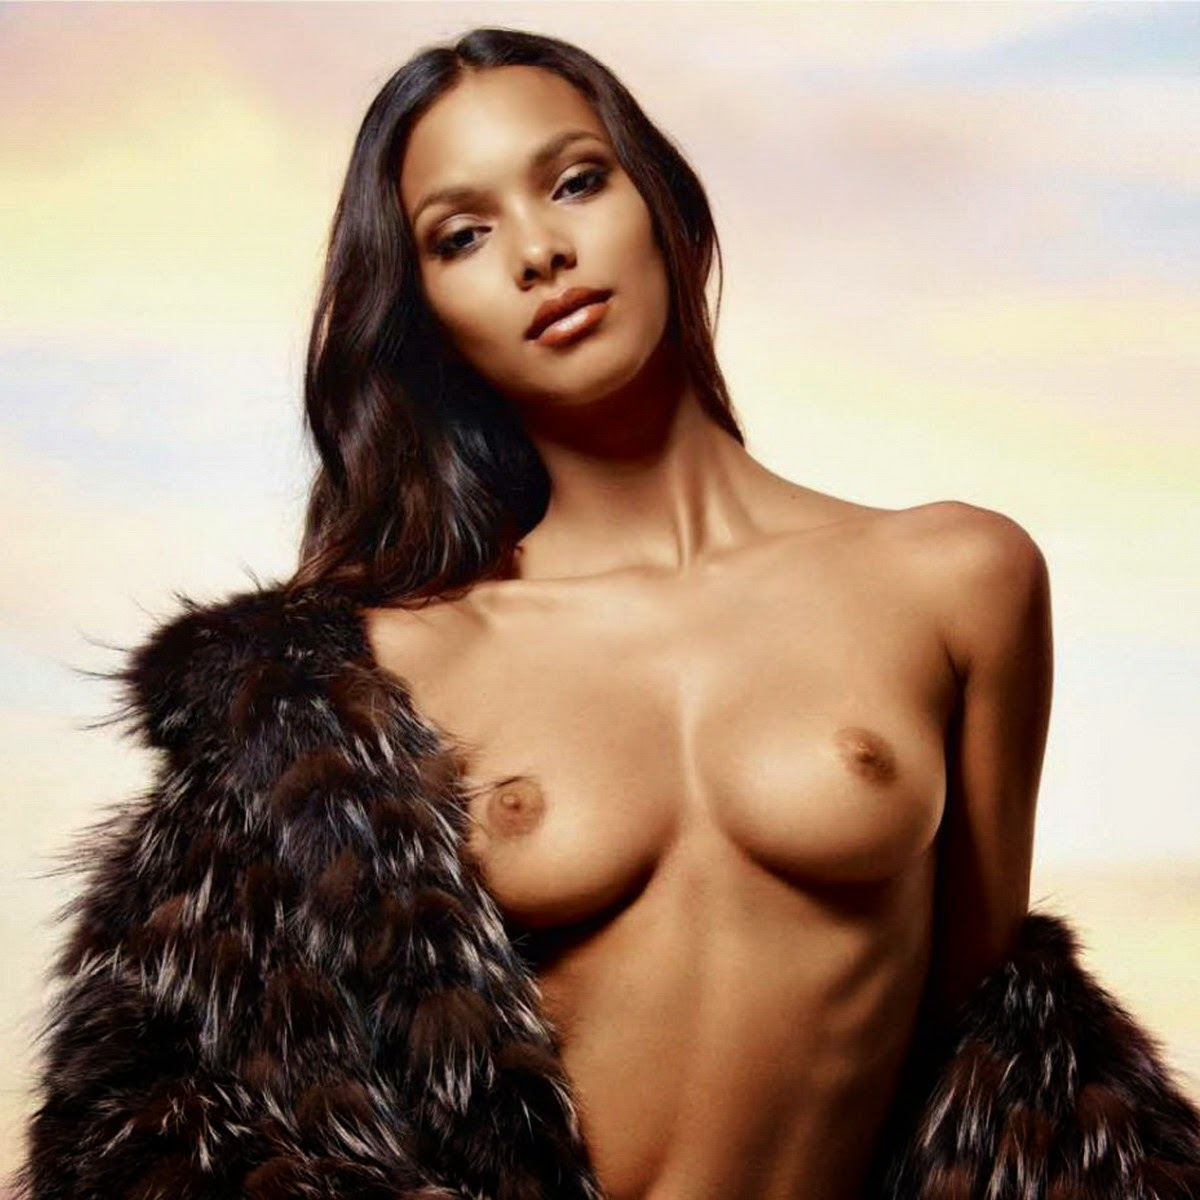 Jasmine Tookes nude leaked photos – Nude Celebrity Photos